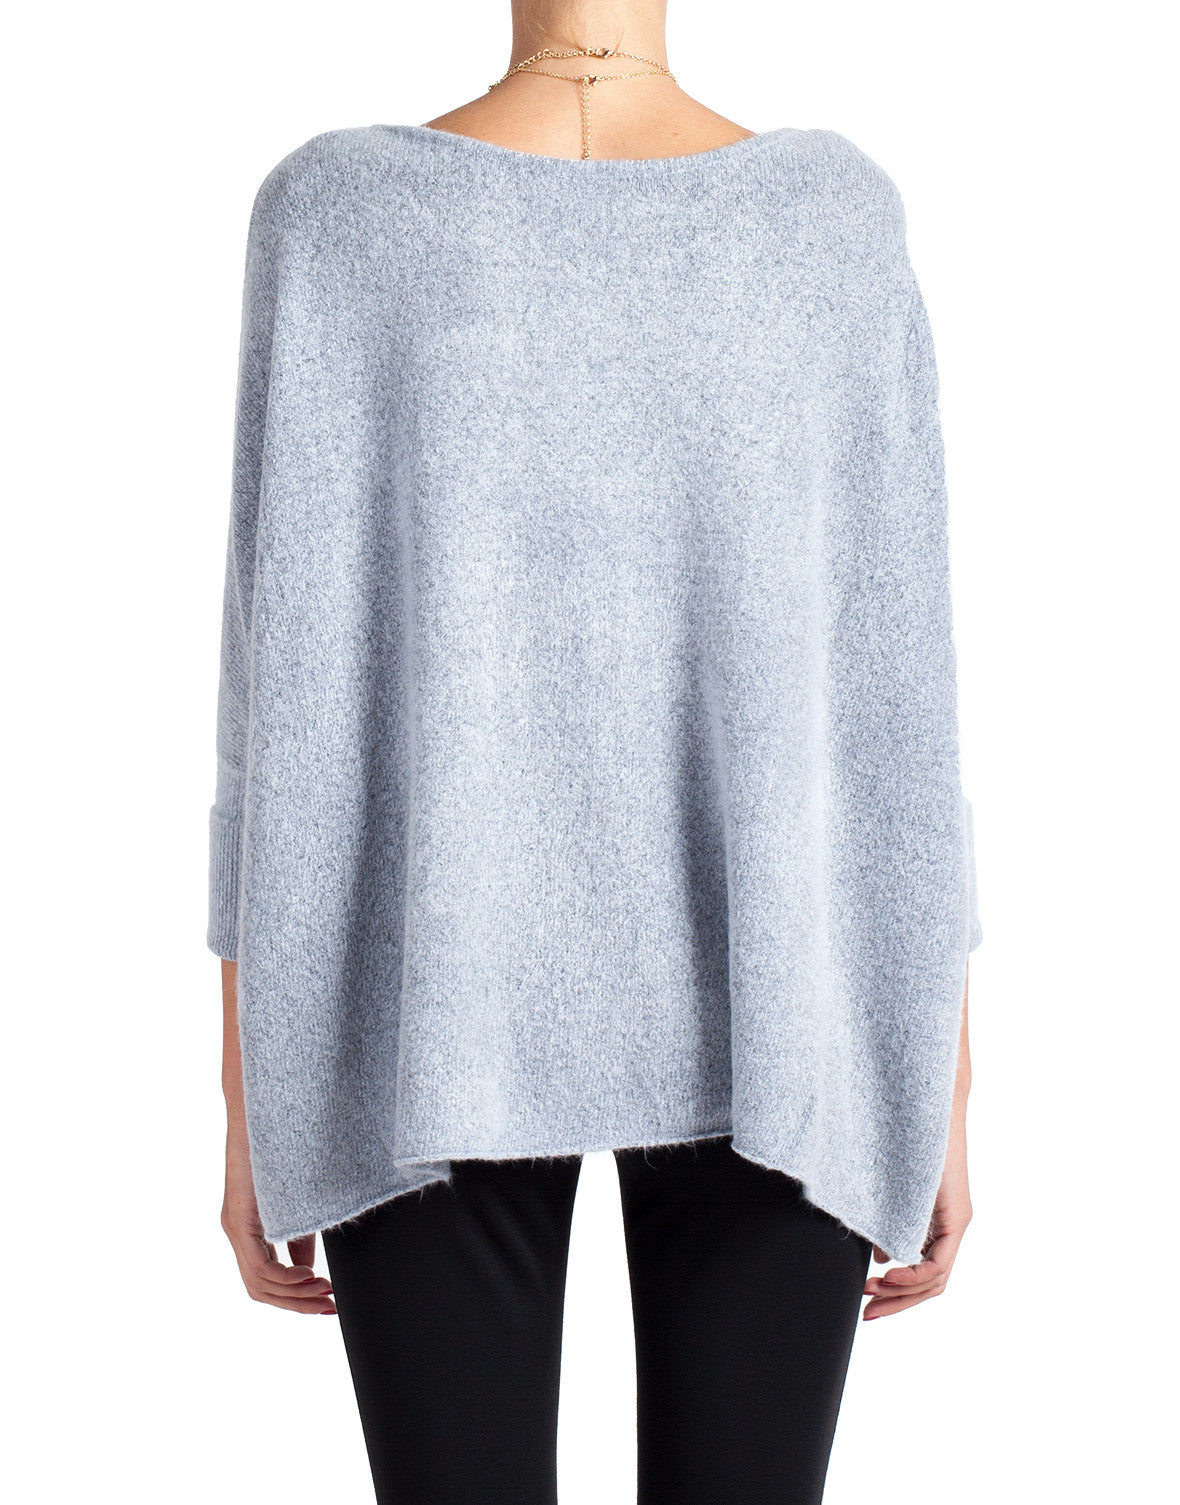 Powder Soft Knit Sweater